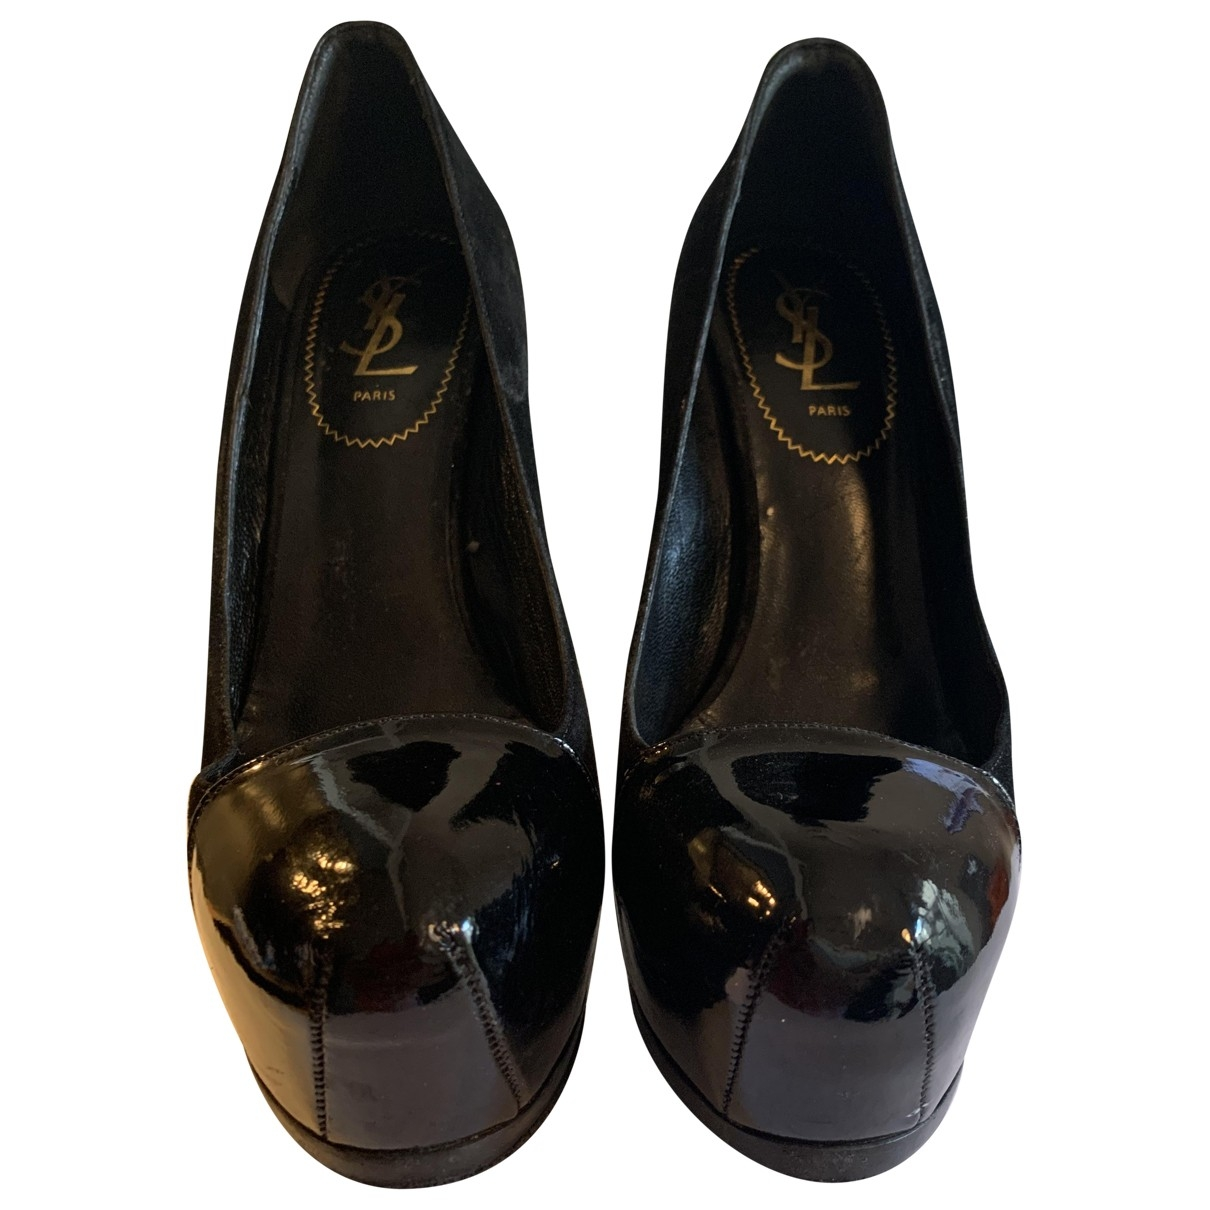 Tacones Trib Too de Cuero Yves Saint Laurent